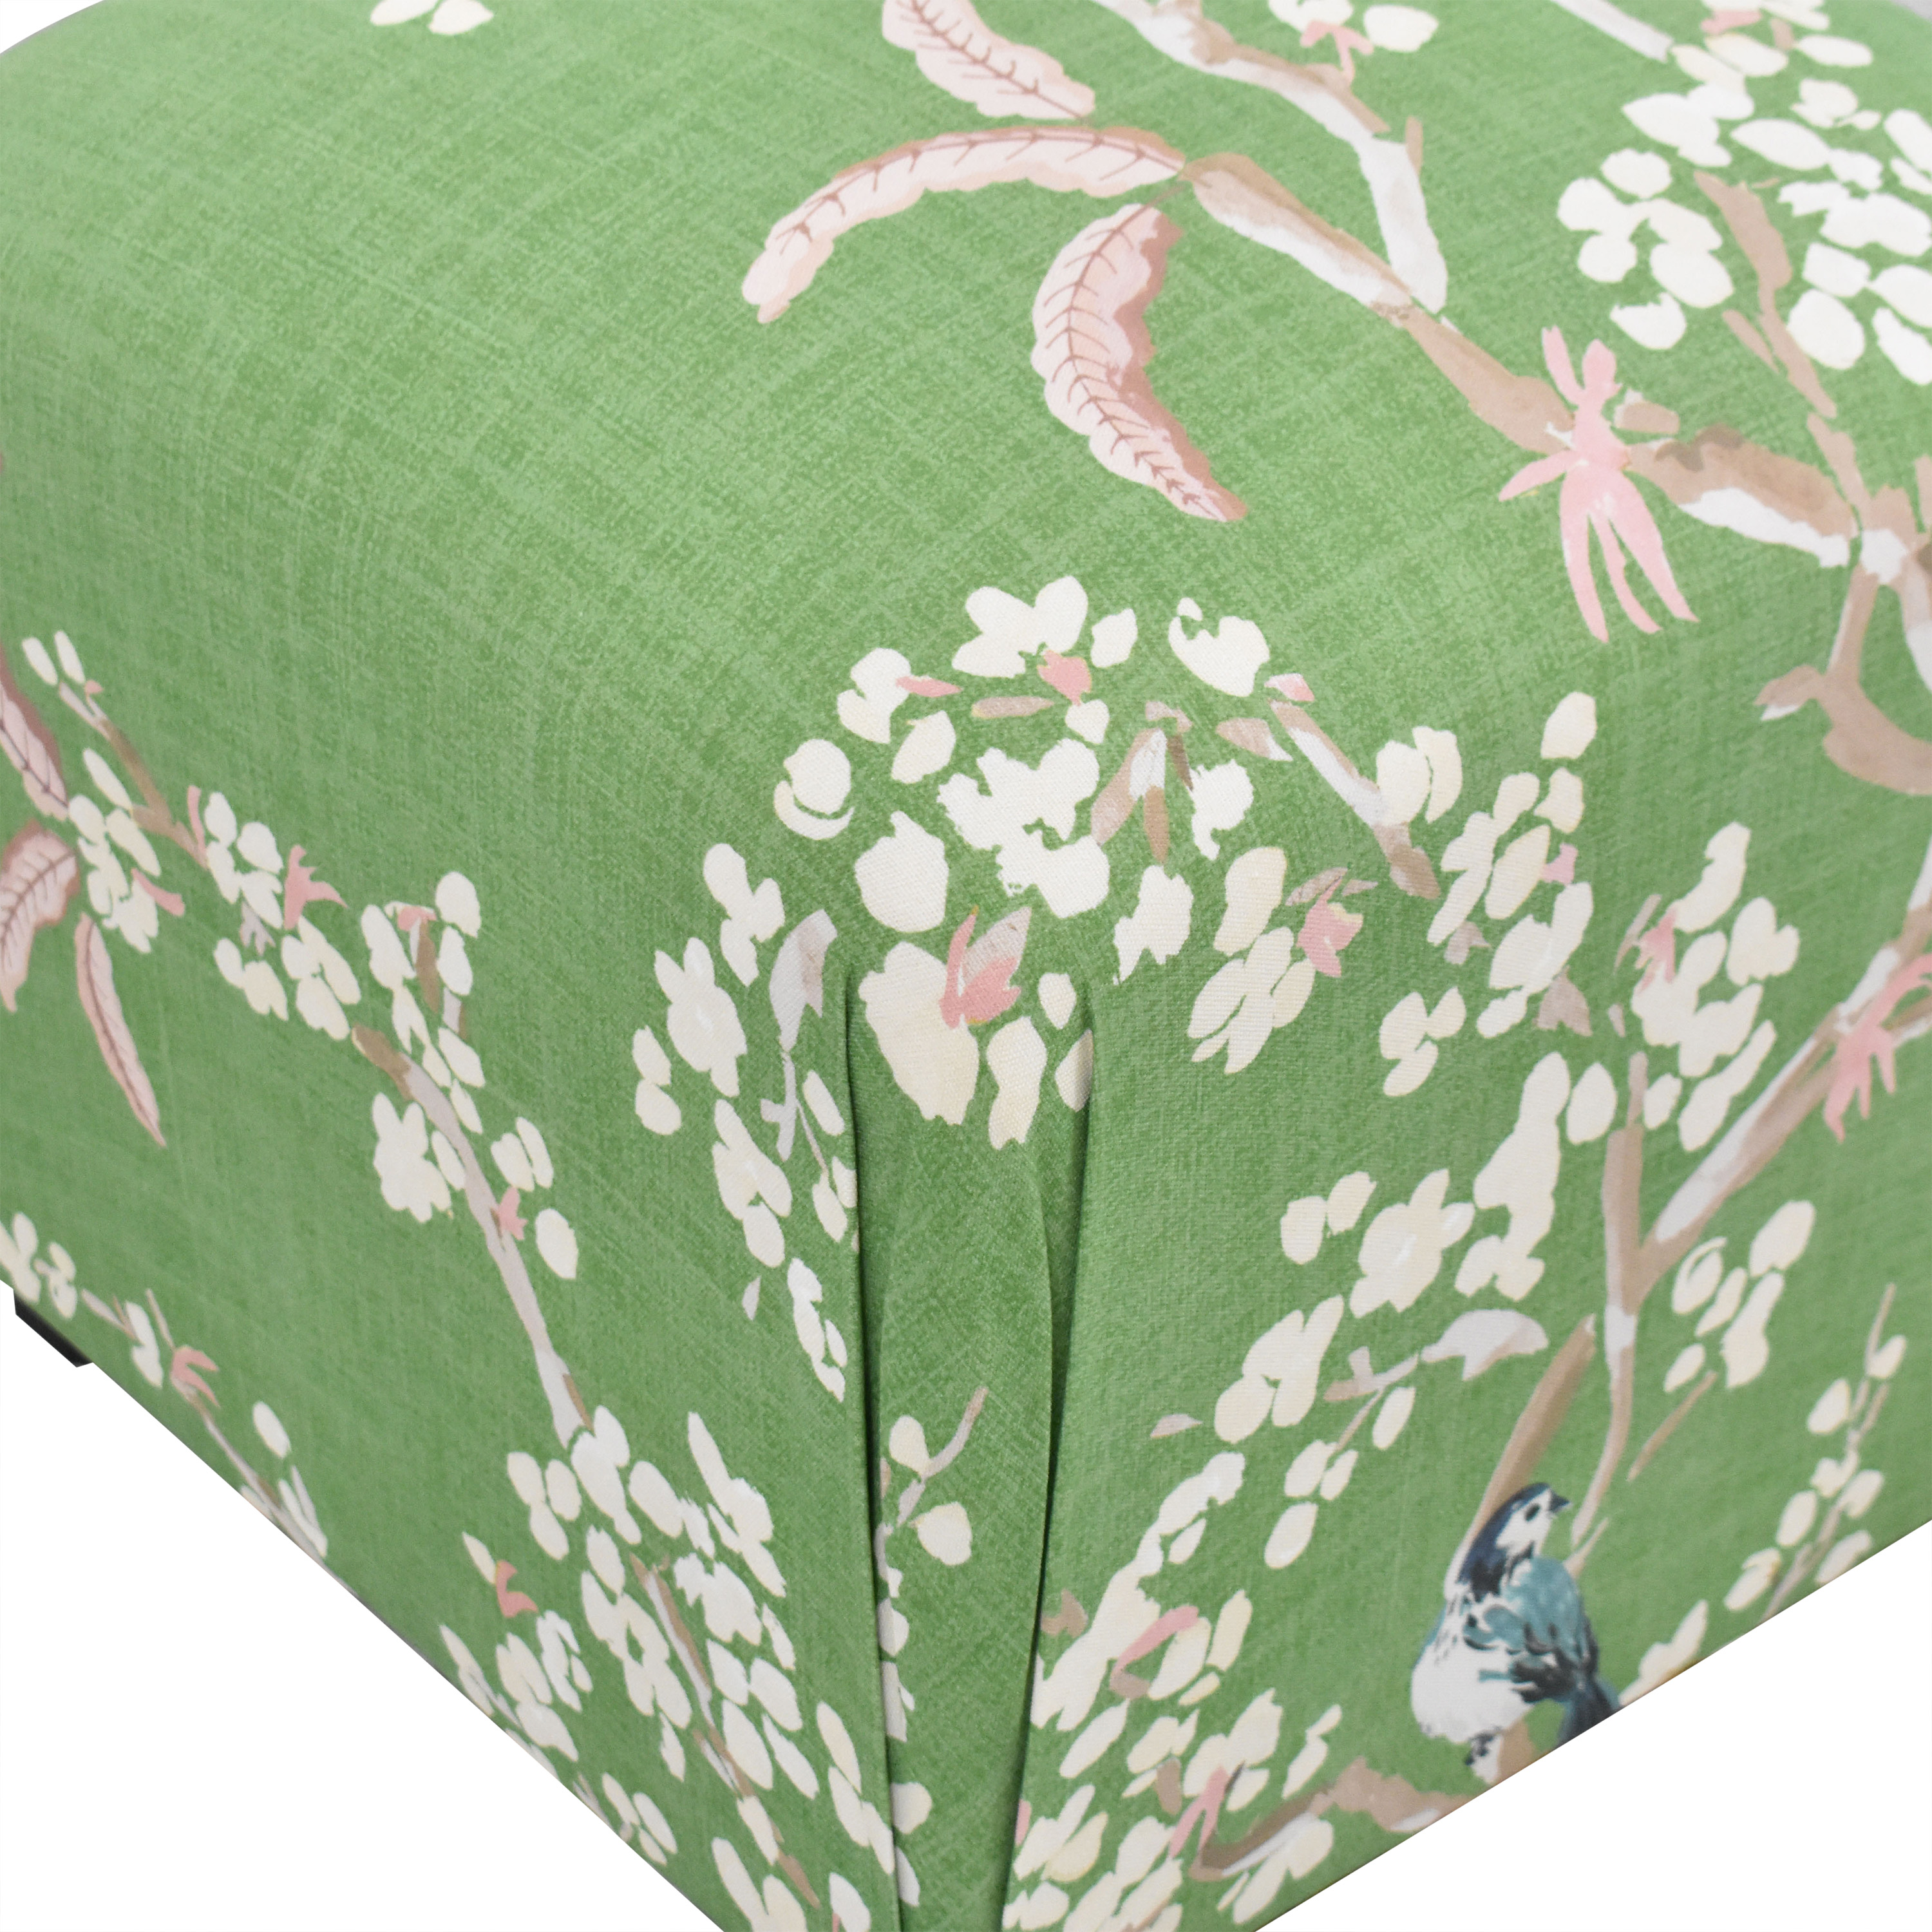 The Inside Cherry Blossom Deco Ottoman / Chairs